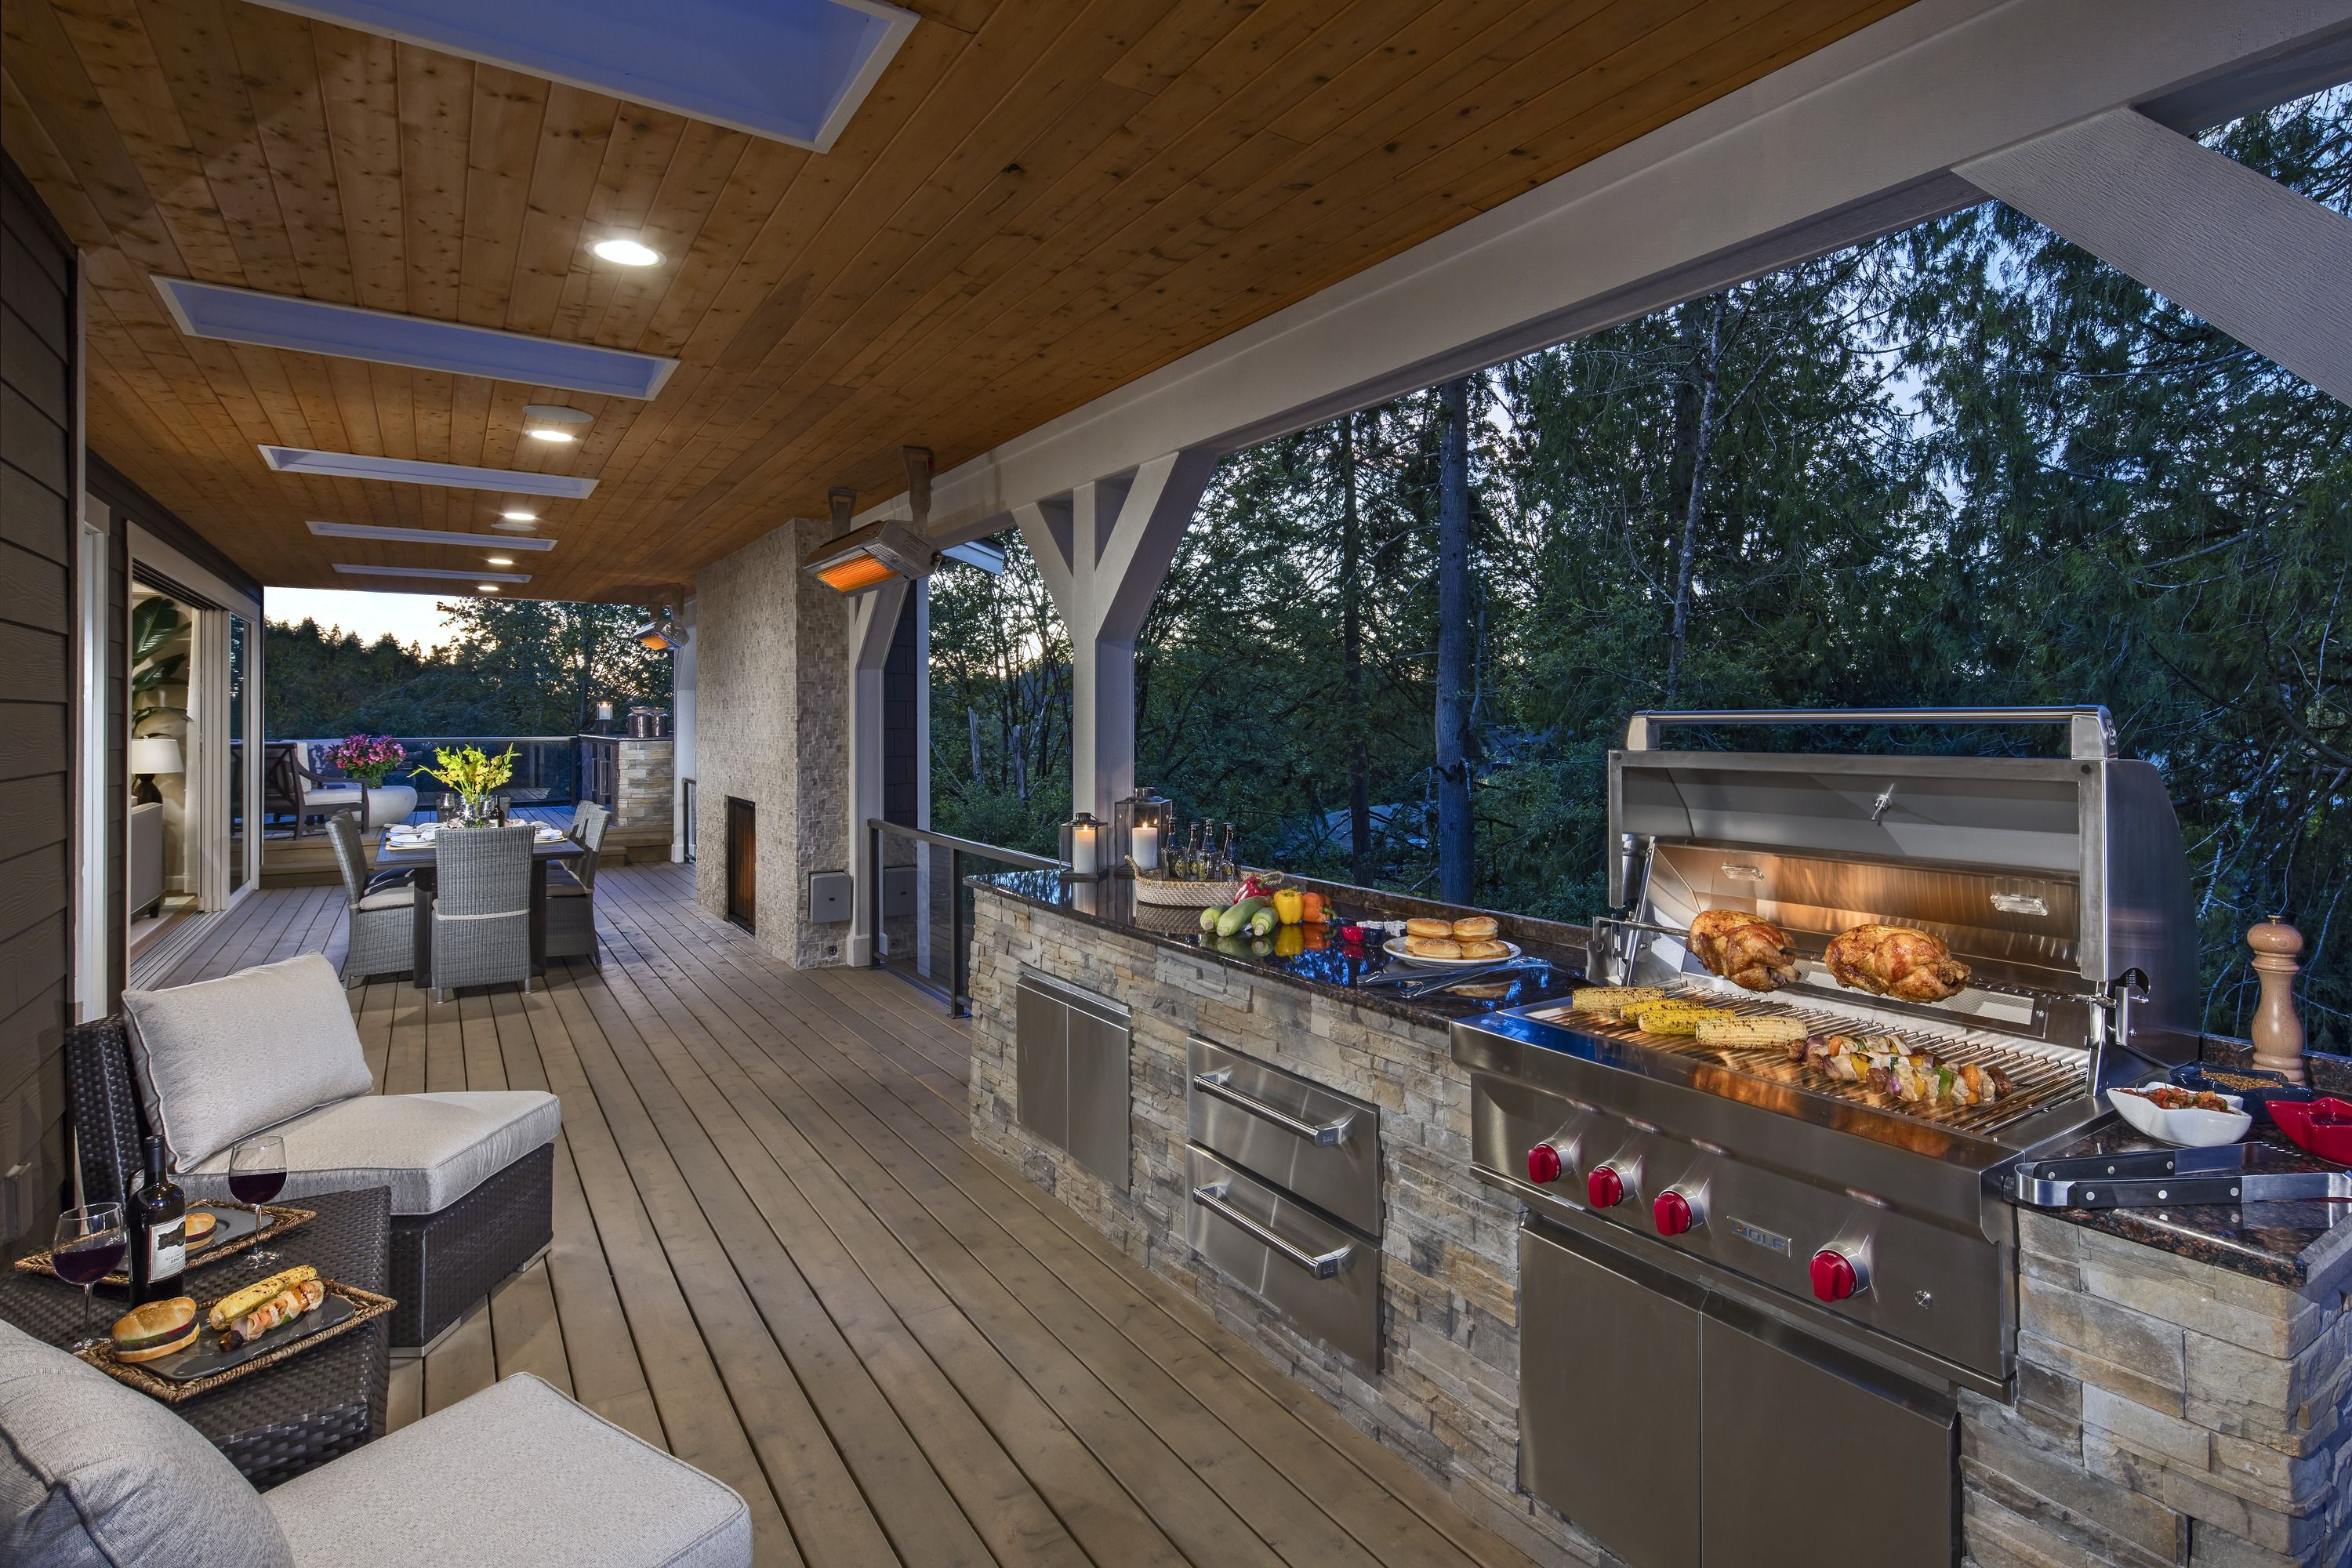 Pipers Glen In 2019 Patio Kitchen Outdoor Kitchen